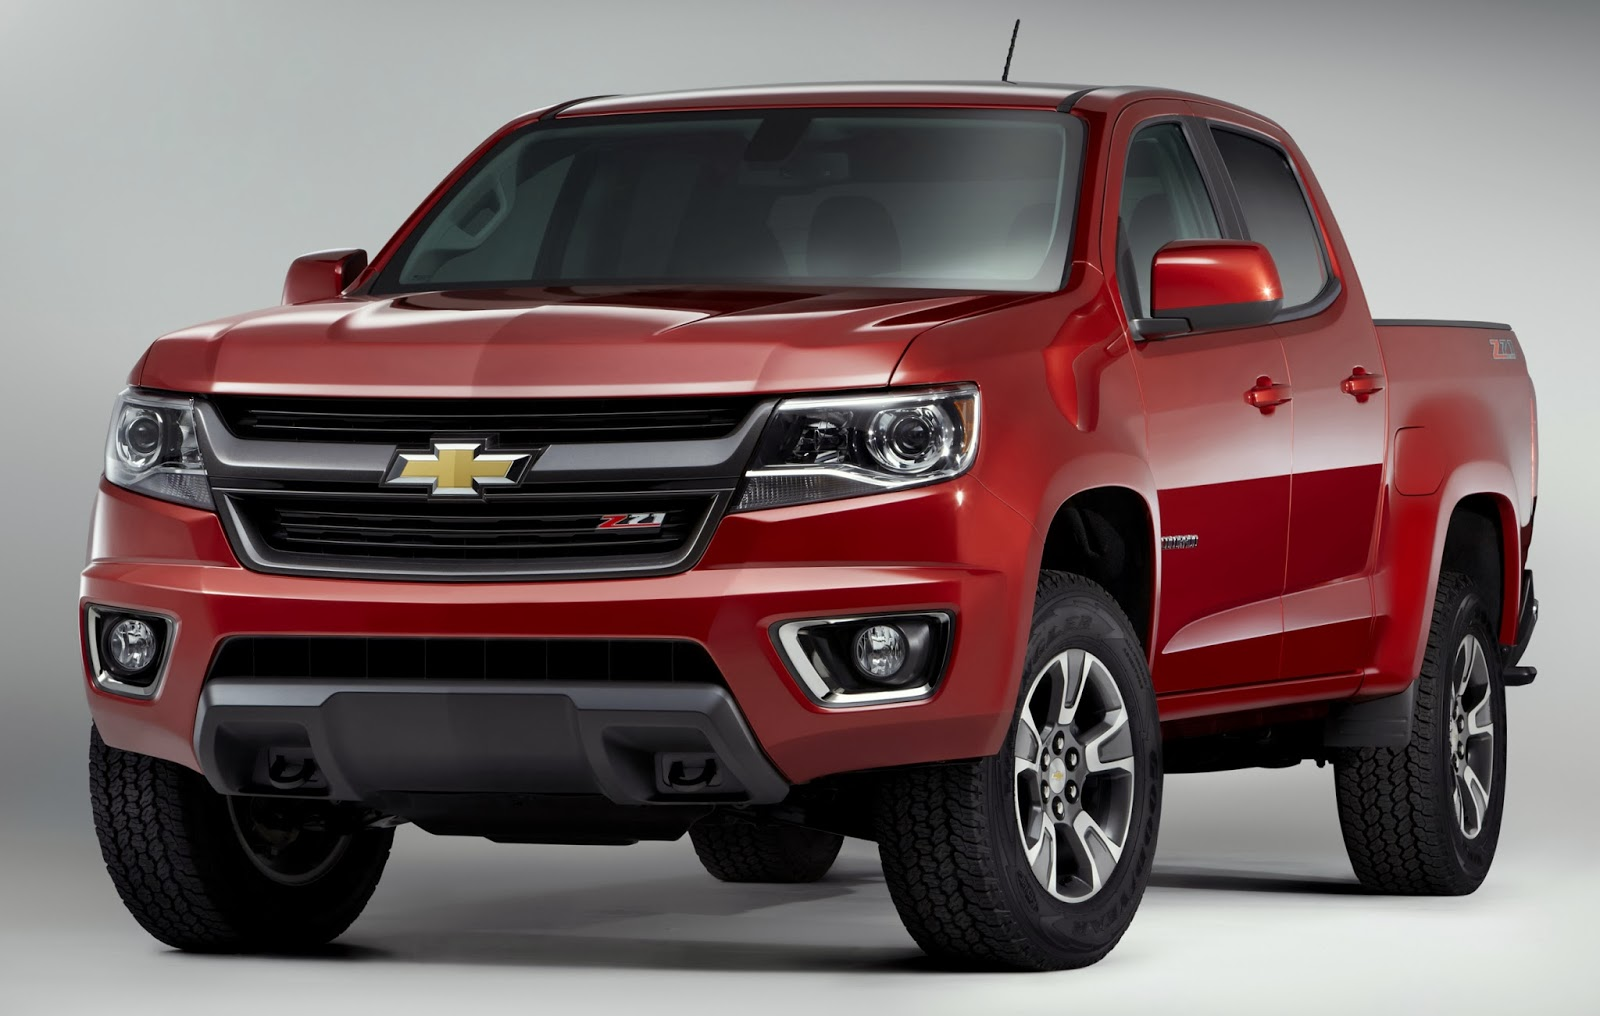 chevrolet re enters the mid size truck market with the 2015 colorado w video. Black Bedroom Furniture Sets. Home Design Ideas